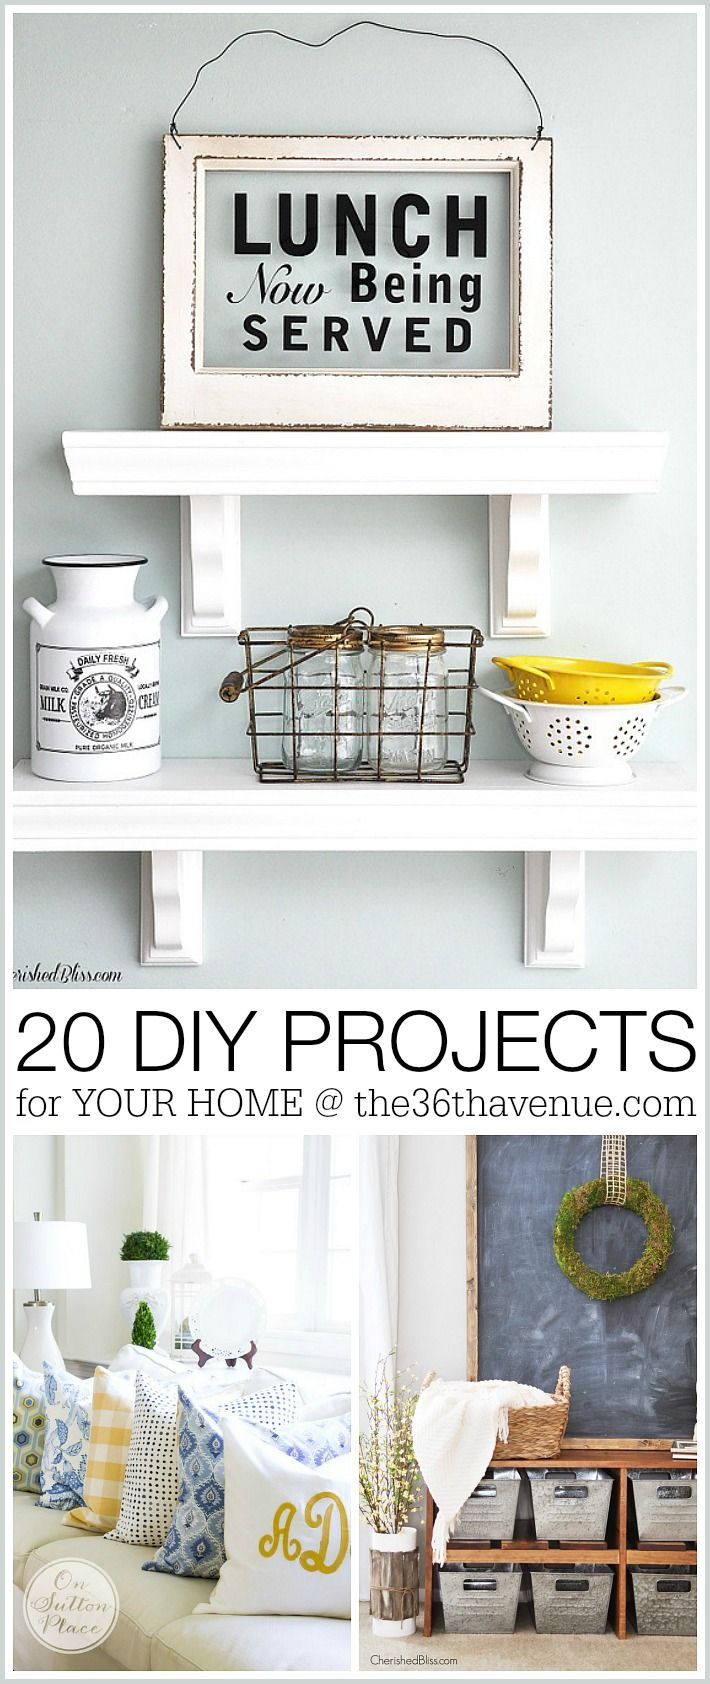 Home Decor DIY Projects | Pinterest | Crafts, Crafty and Decorating